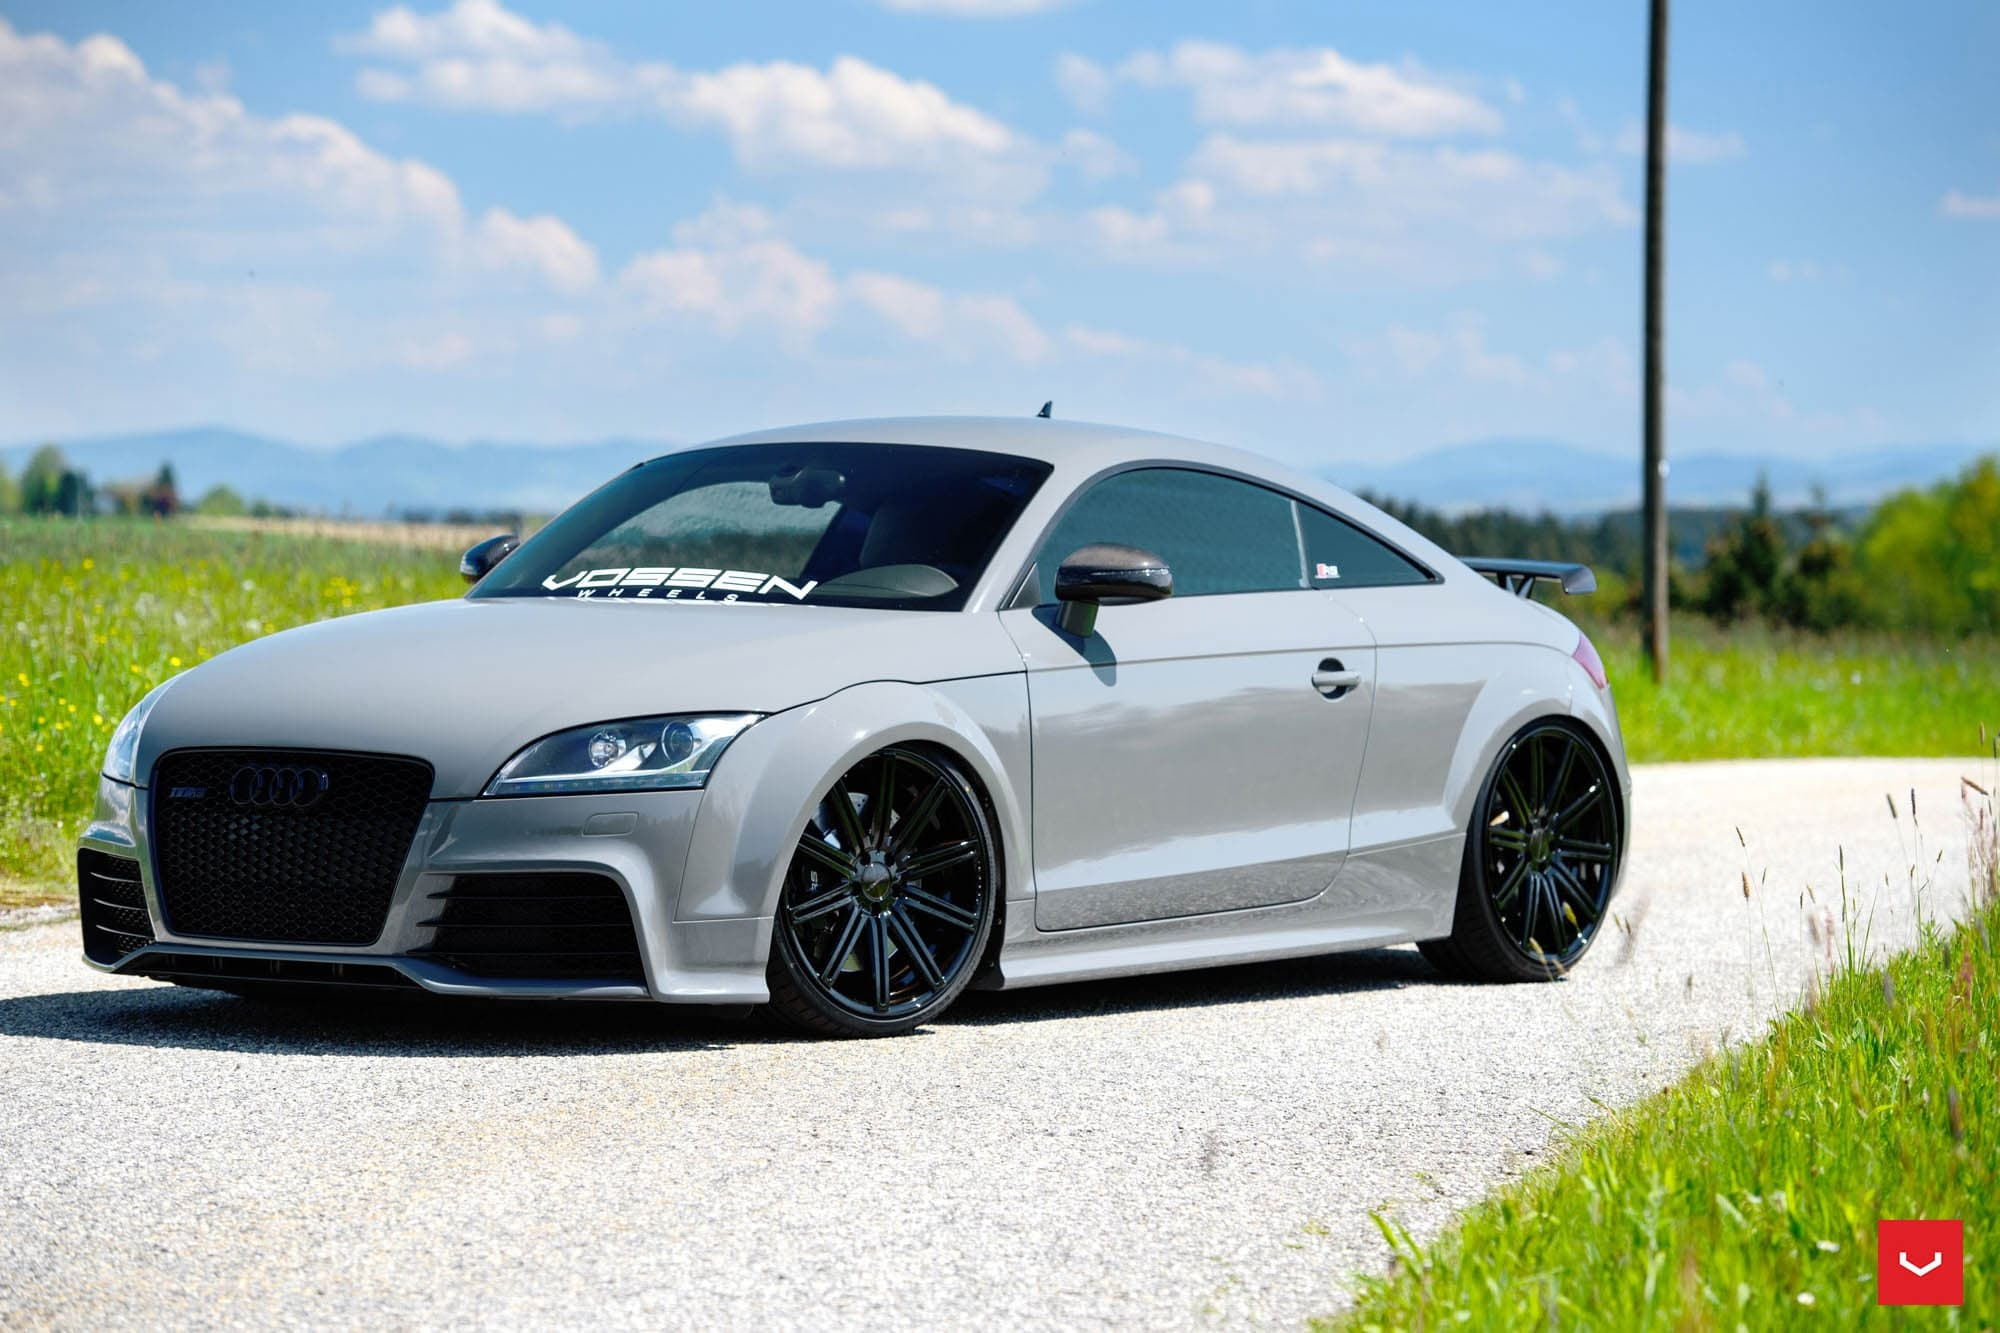 Audi Tt Rs Tuning Wallpapers Hd Sport Vossen Wheels